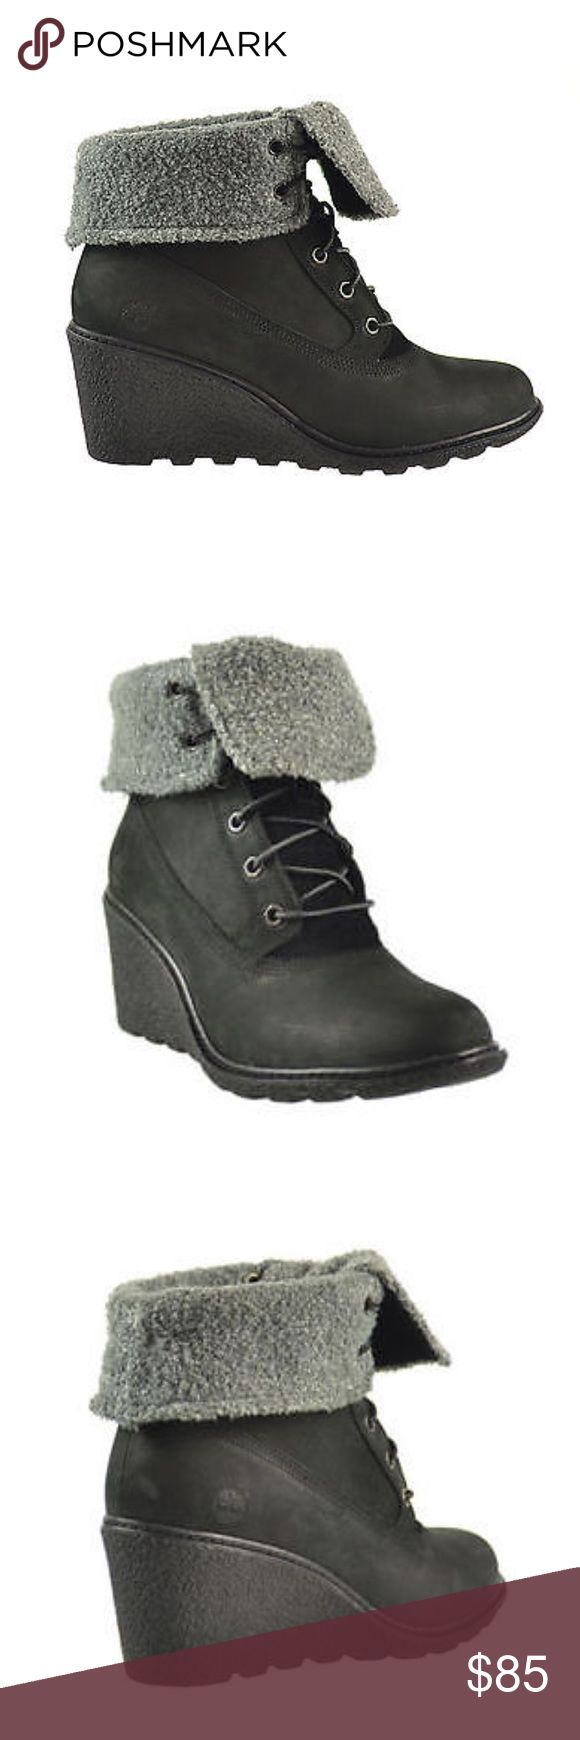 Timberland Earthkeepers Amston Roll Top Boot Timberland Earthkeepers Amston Roll Top Women's Boots Black 8258a Timberland Shoes Ankle Boots & Booties